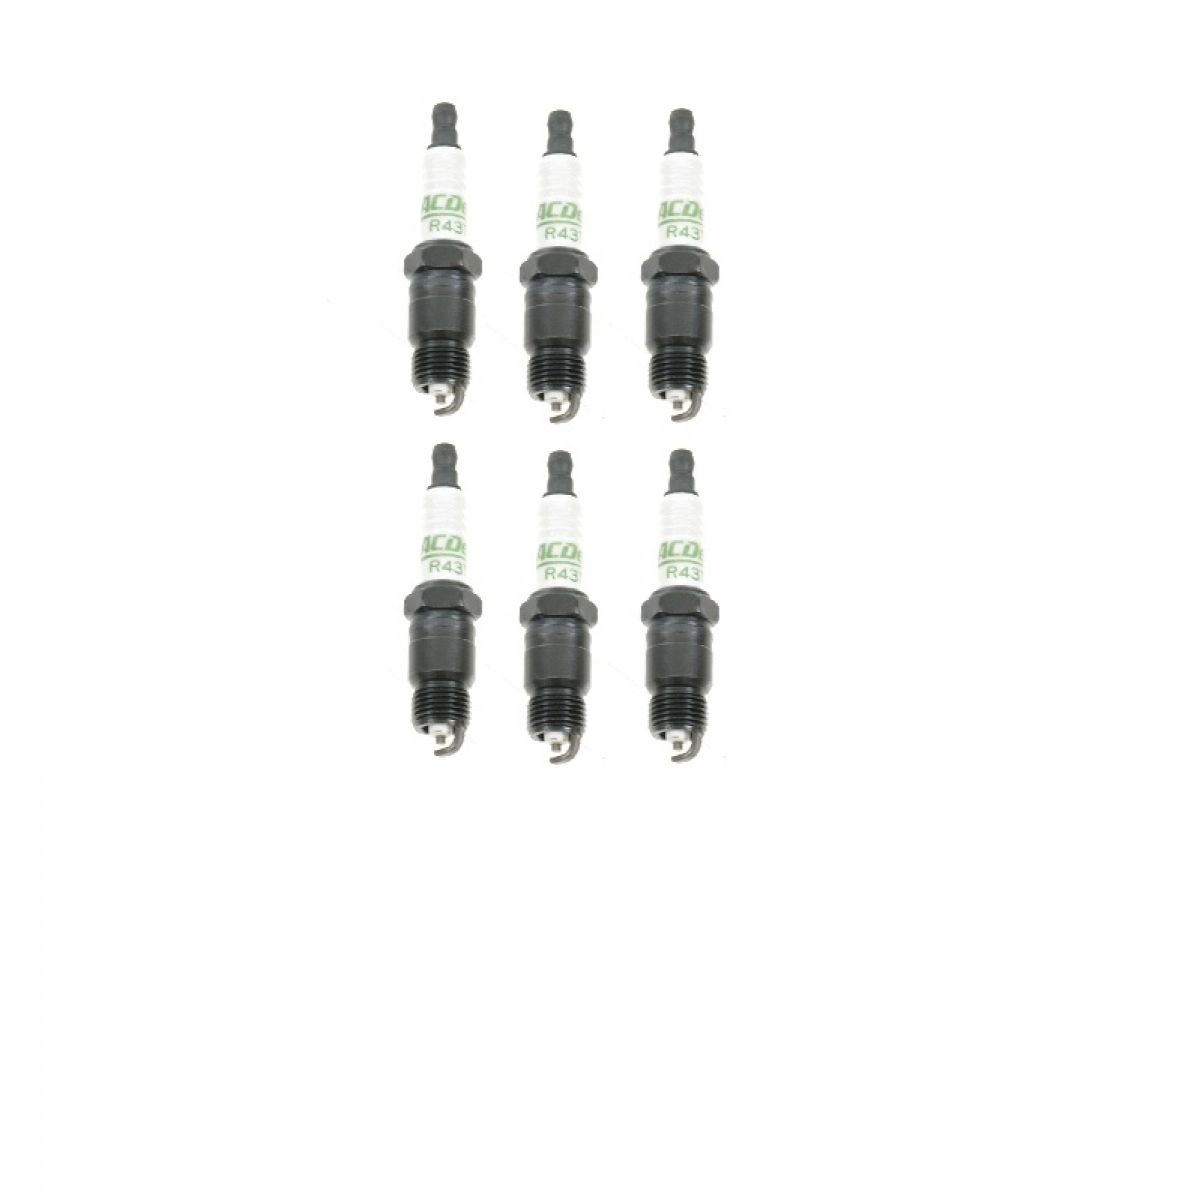 Ac Delco R43ts Spark Plug 6 Piece Set Kit For Buick Chevy